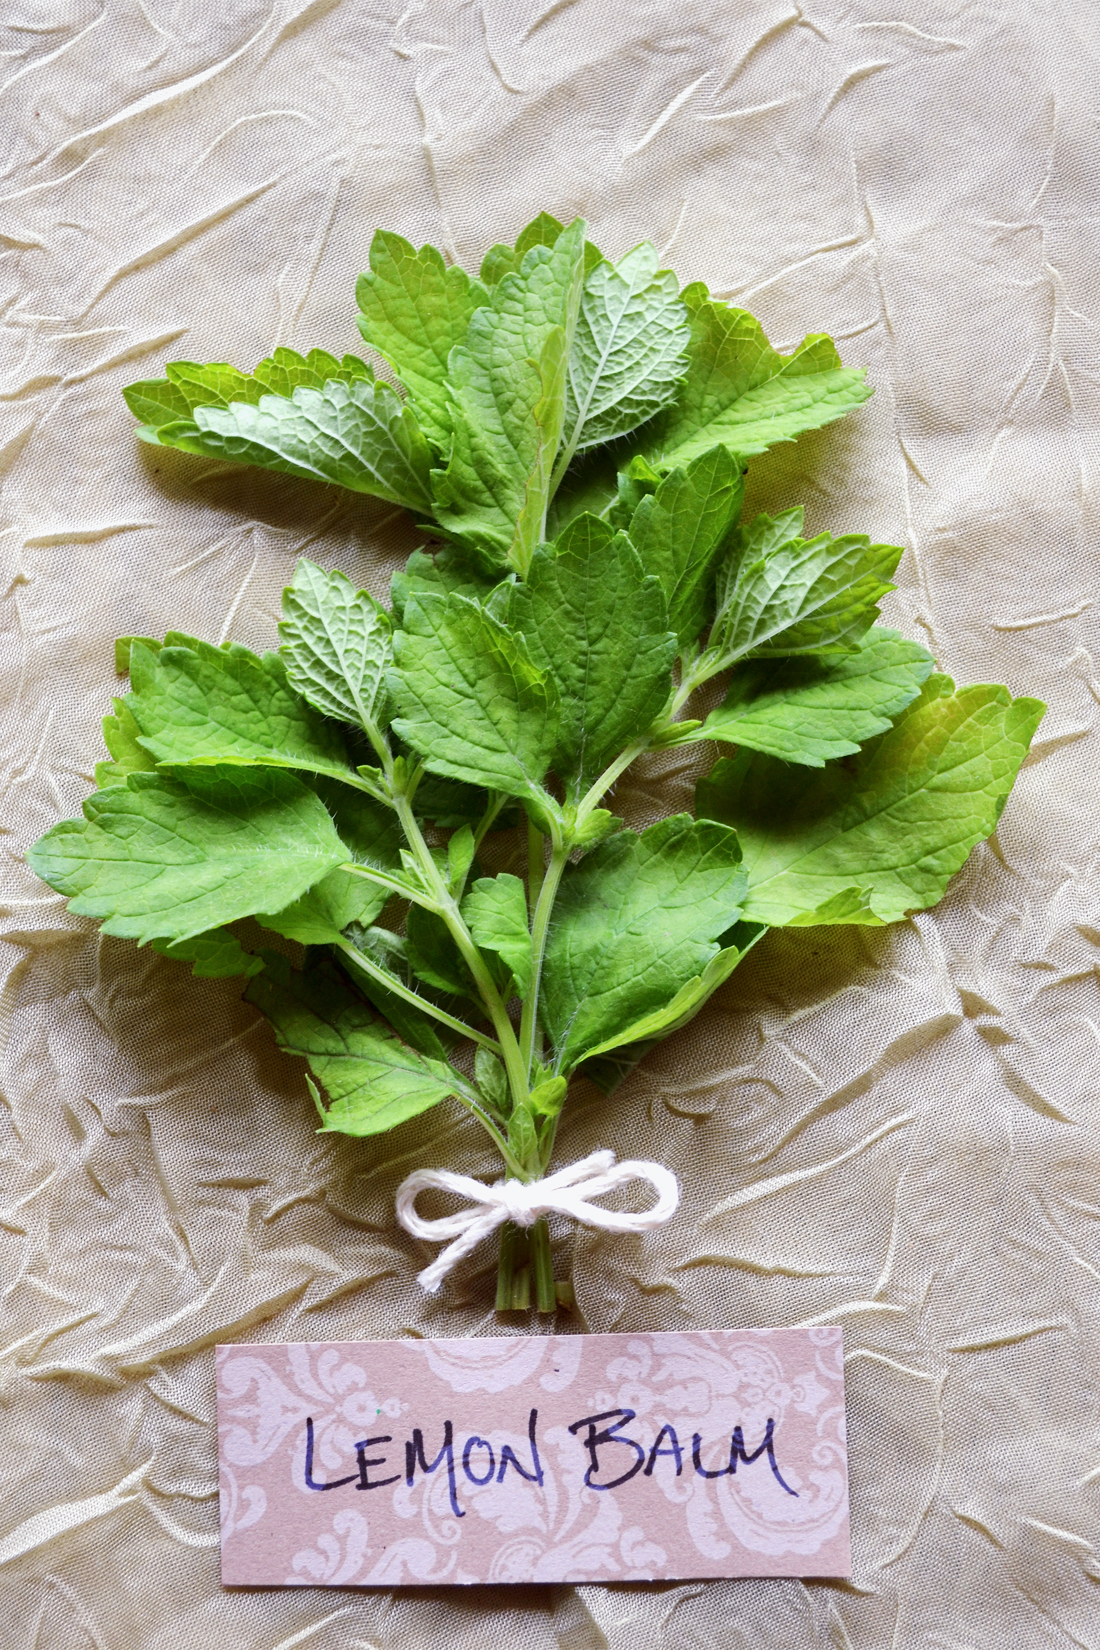 Lemon Balm: The Immortal Life of Bees | Herbal Academy | Enjoy this history of lemon balm and its many uses throughout the years.